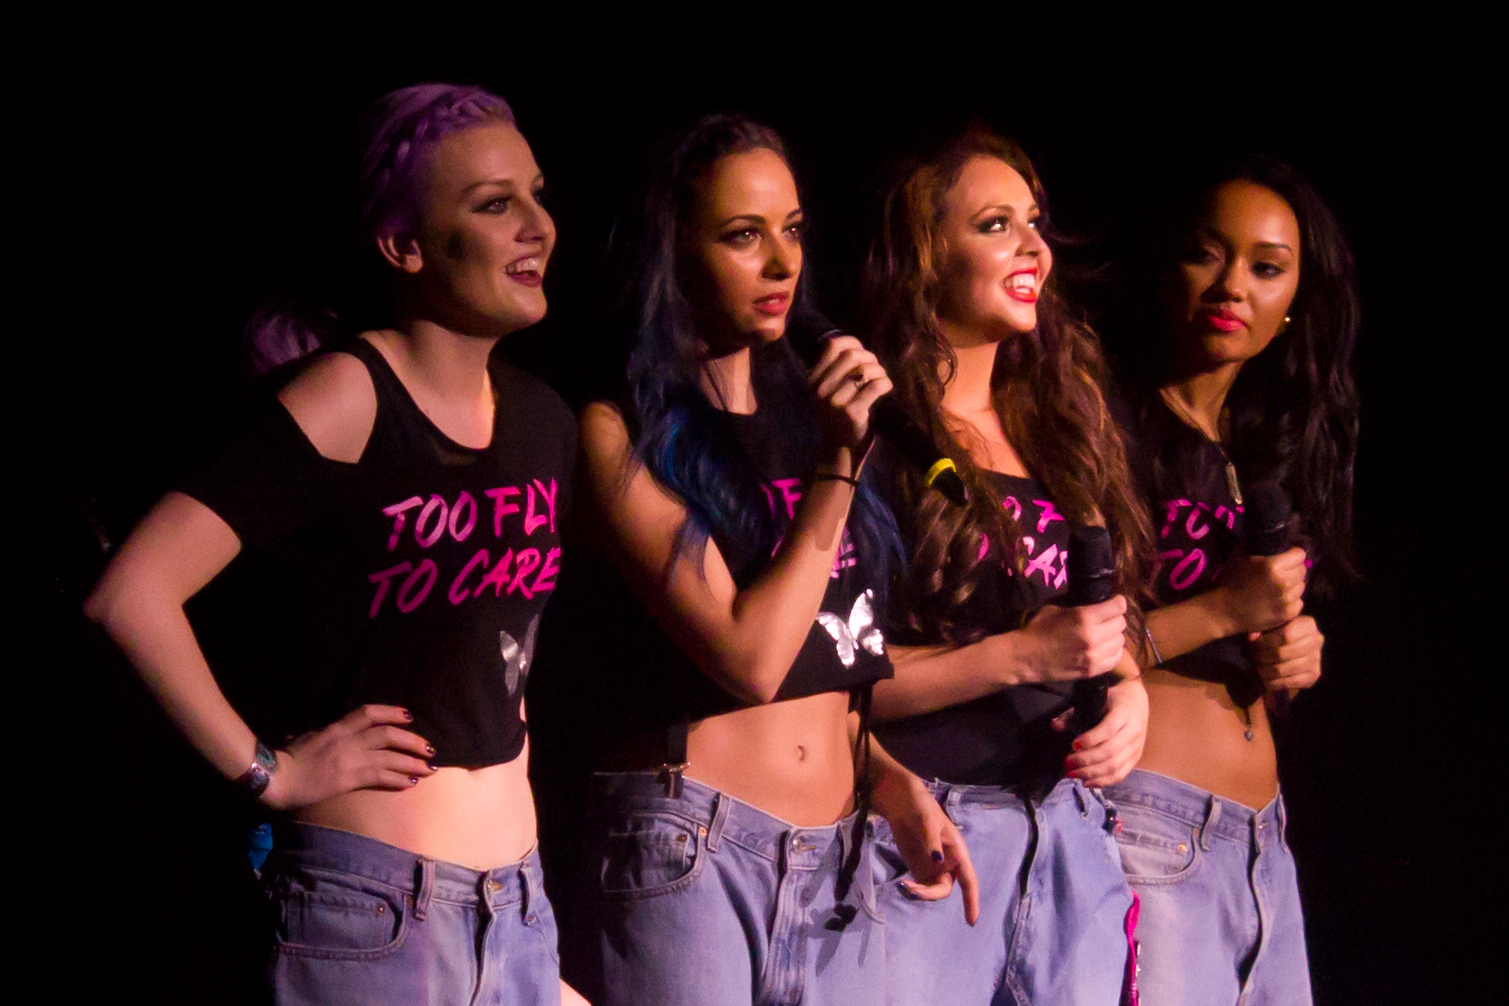 http://upload.wikimedia.org/wikipedia/commons/4/4d/LittleMix15.jpg